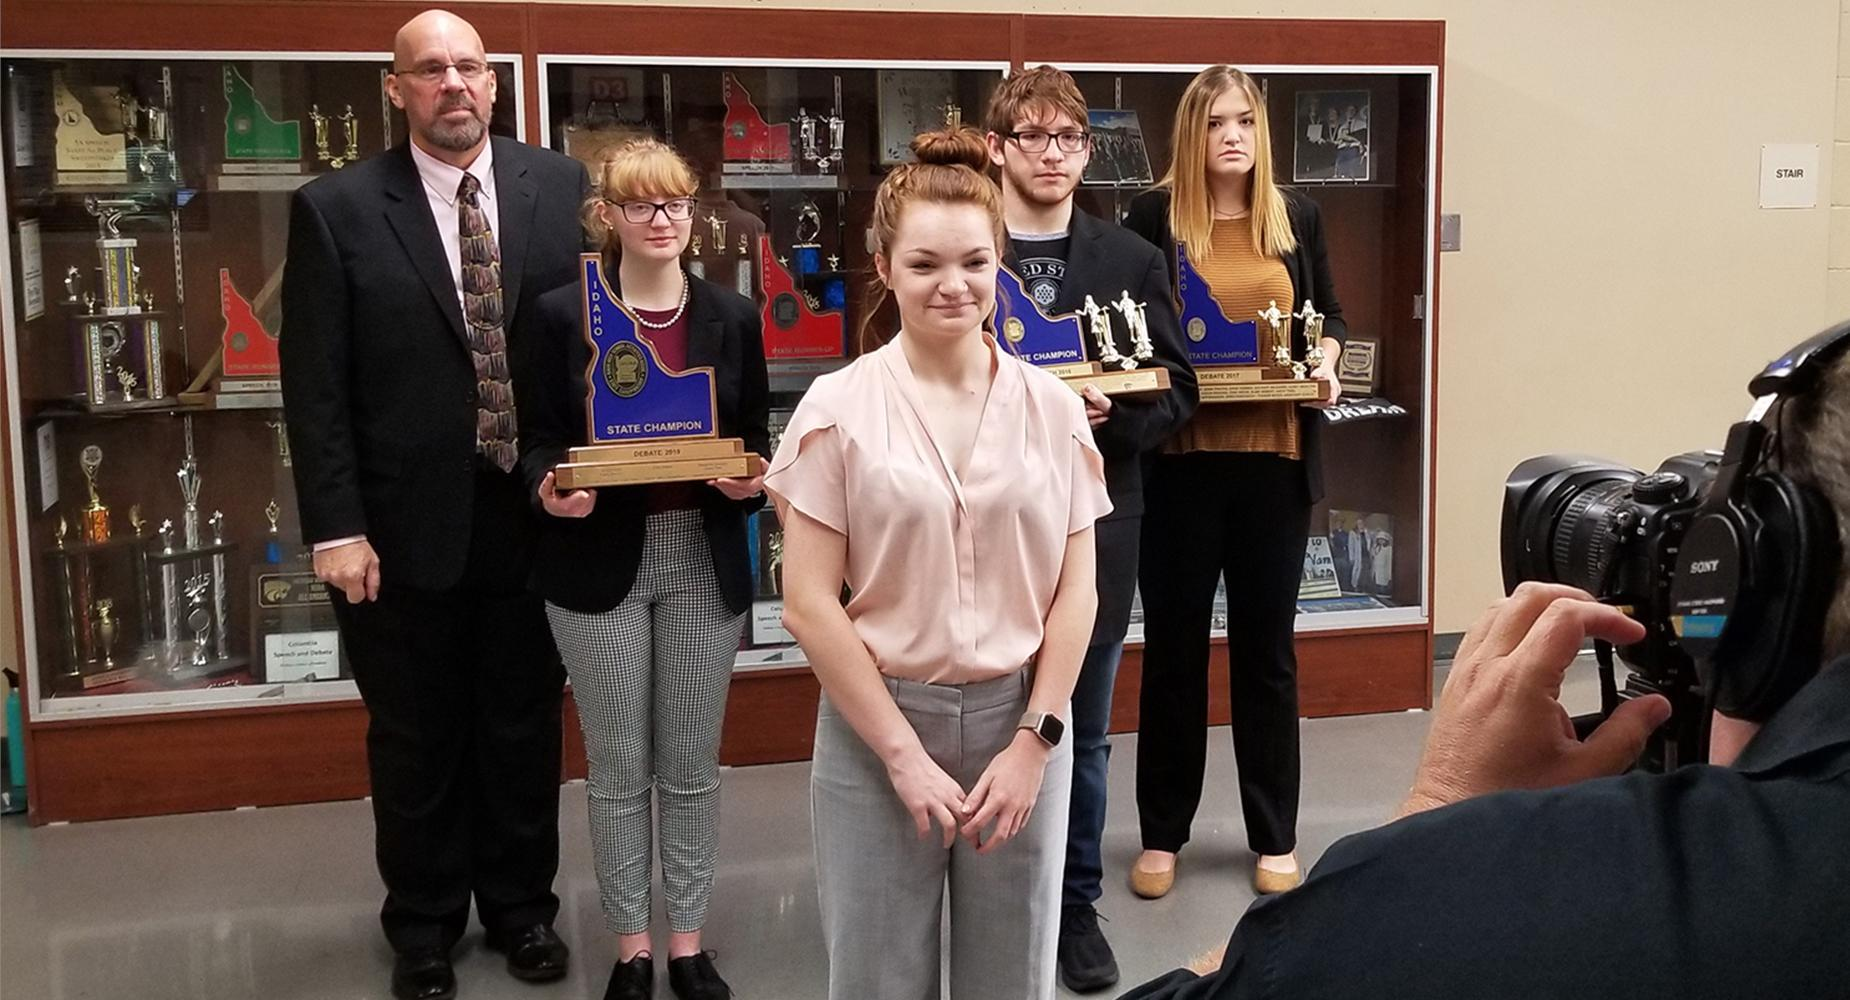 Debate coach Jeffrey Stoppenhagen poses with four speech and debate participants and their trophies.